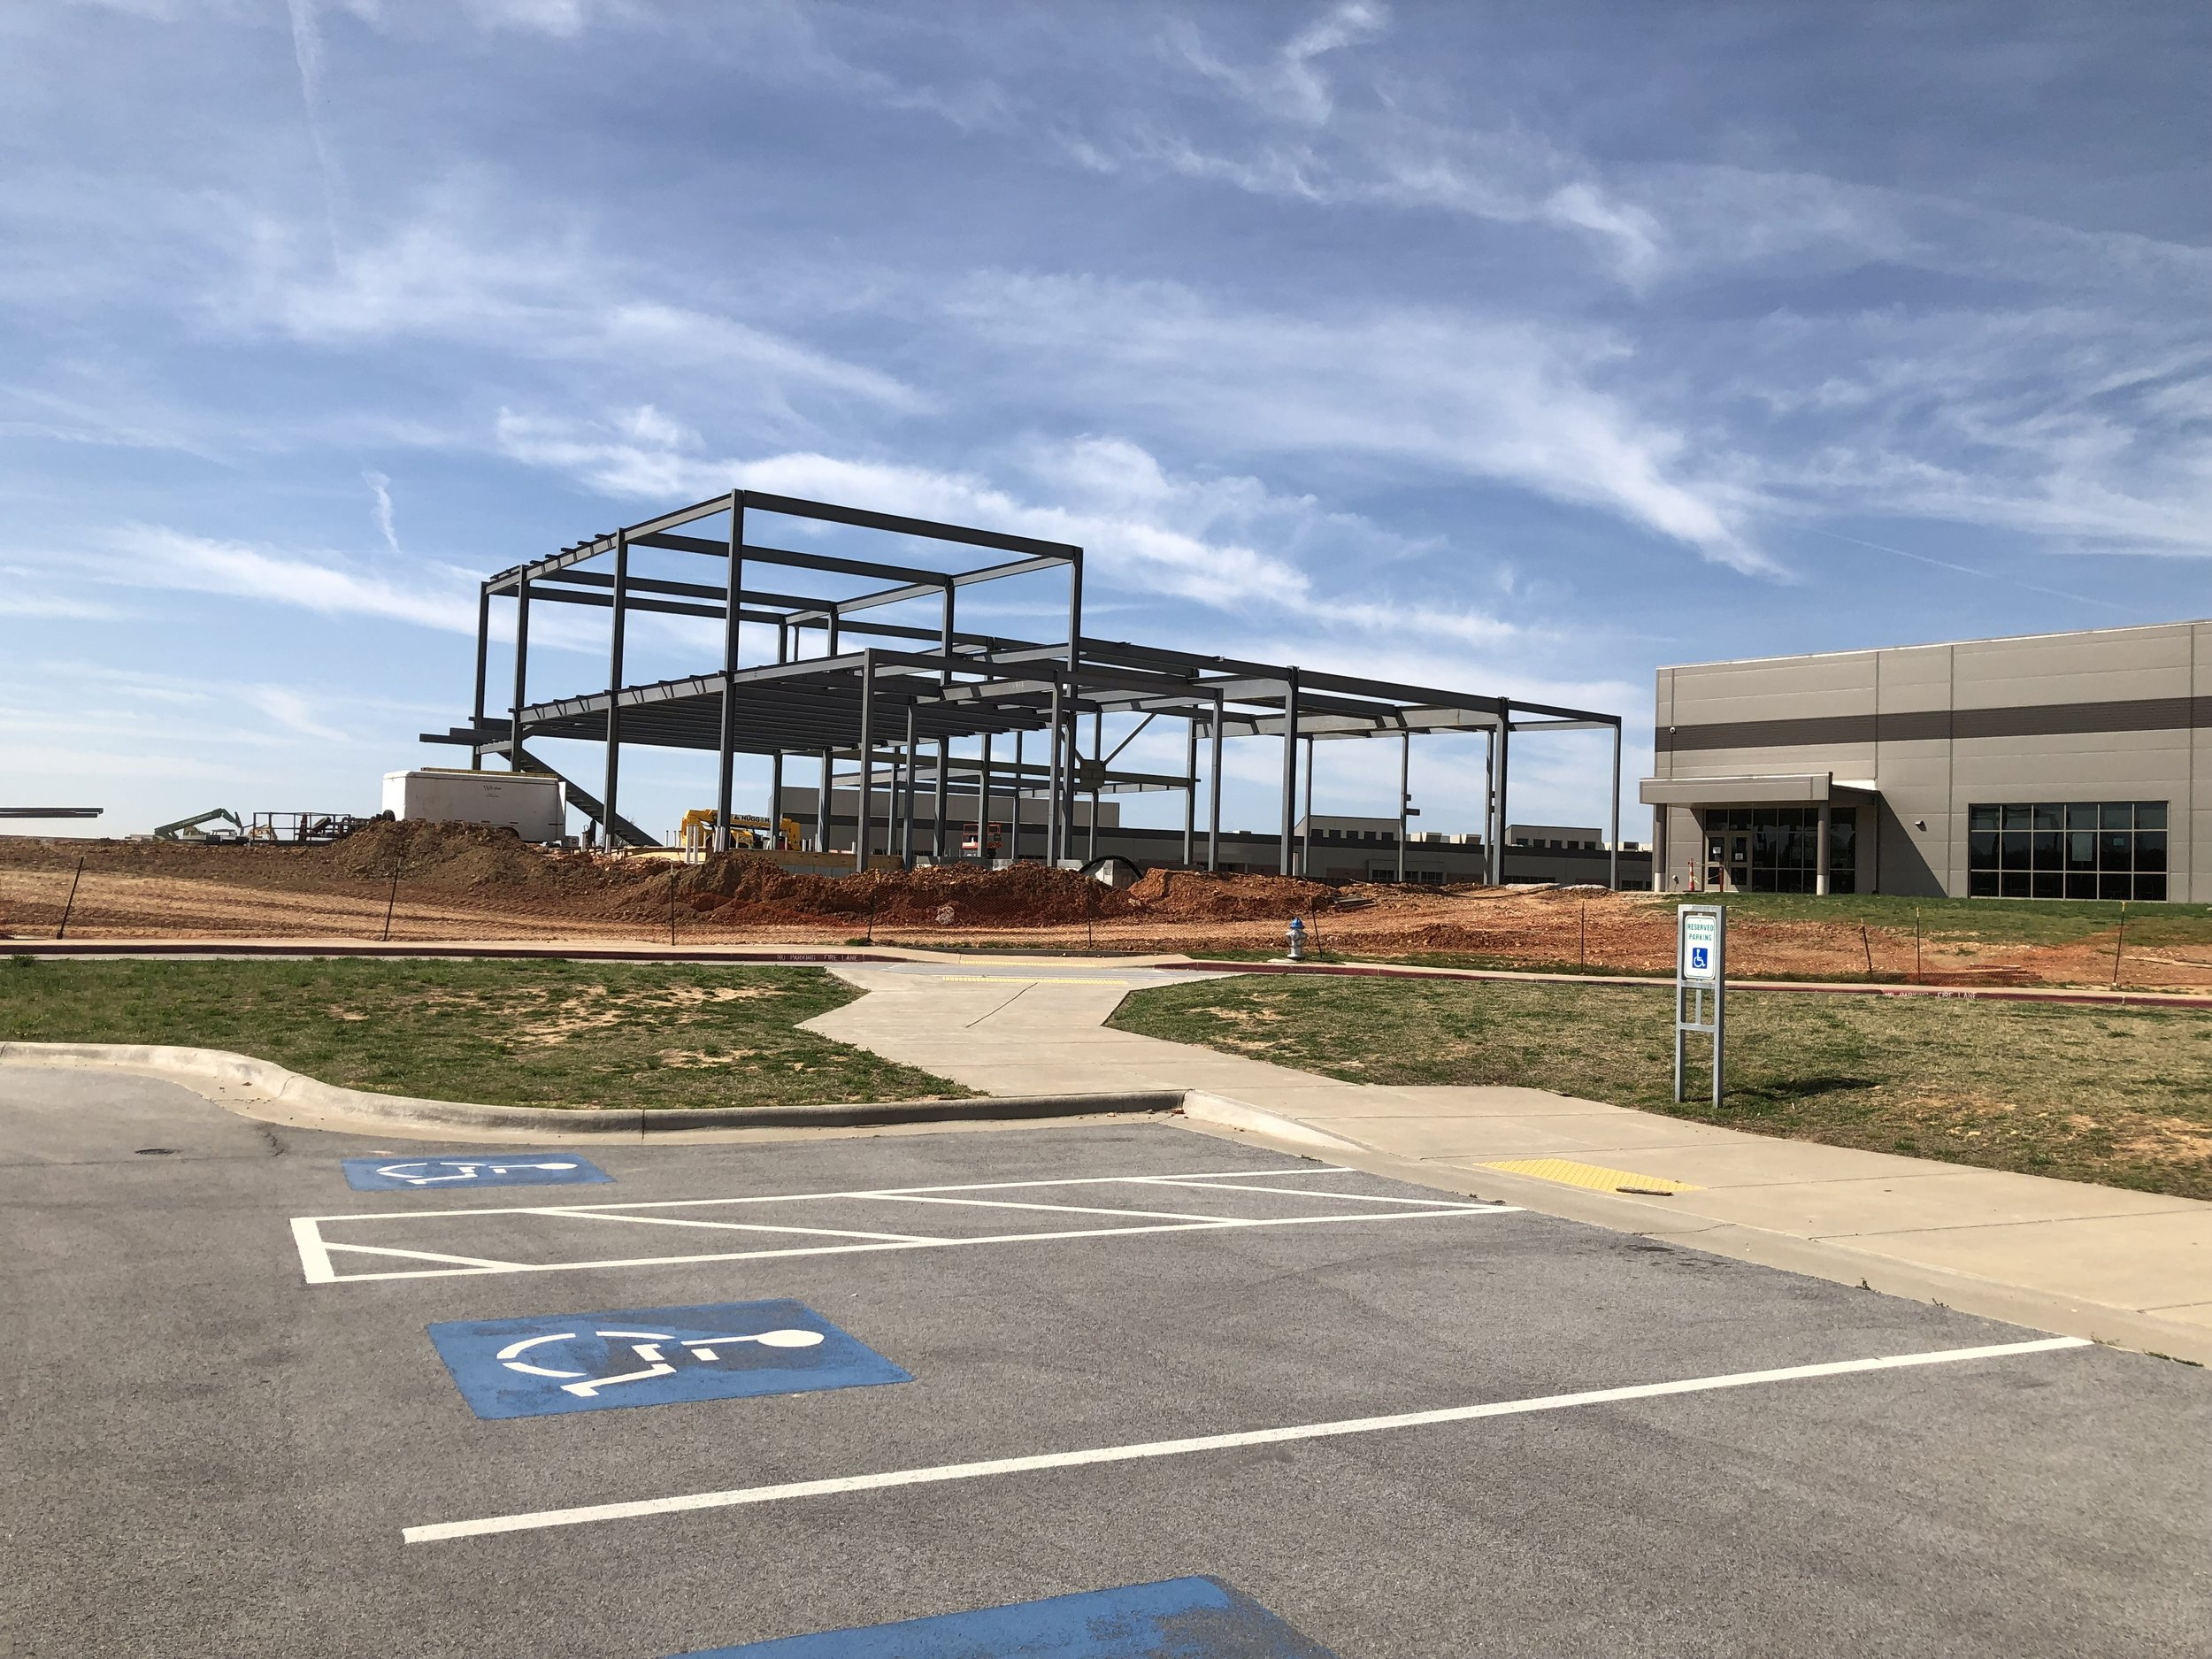 Steel rises for a new expansion to the Don Tyson School of Innovation in Springdale.